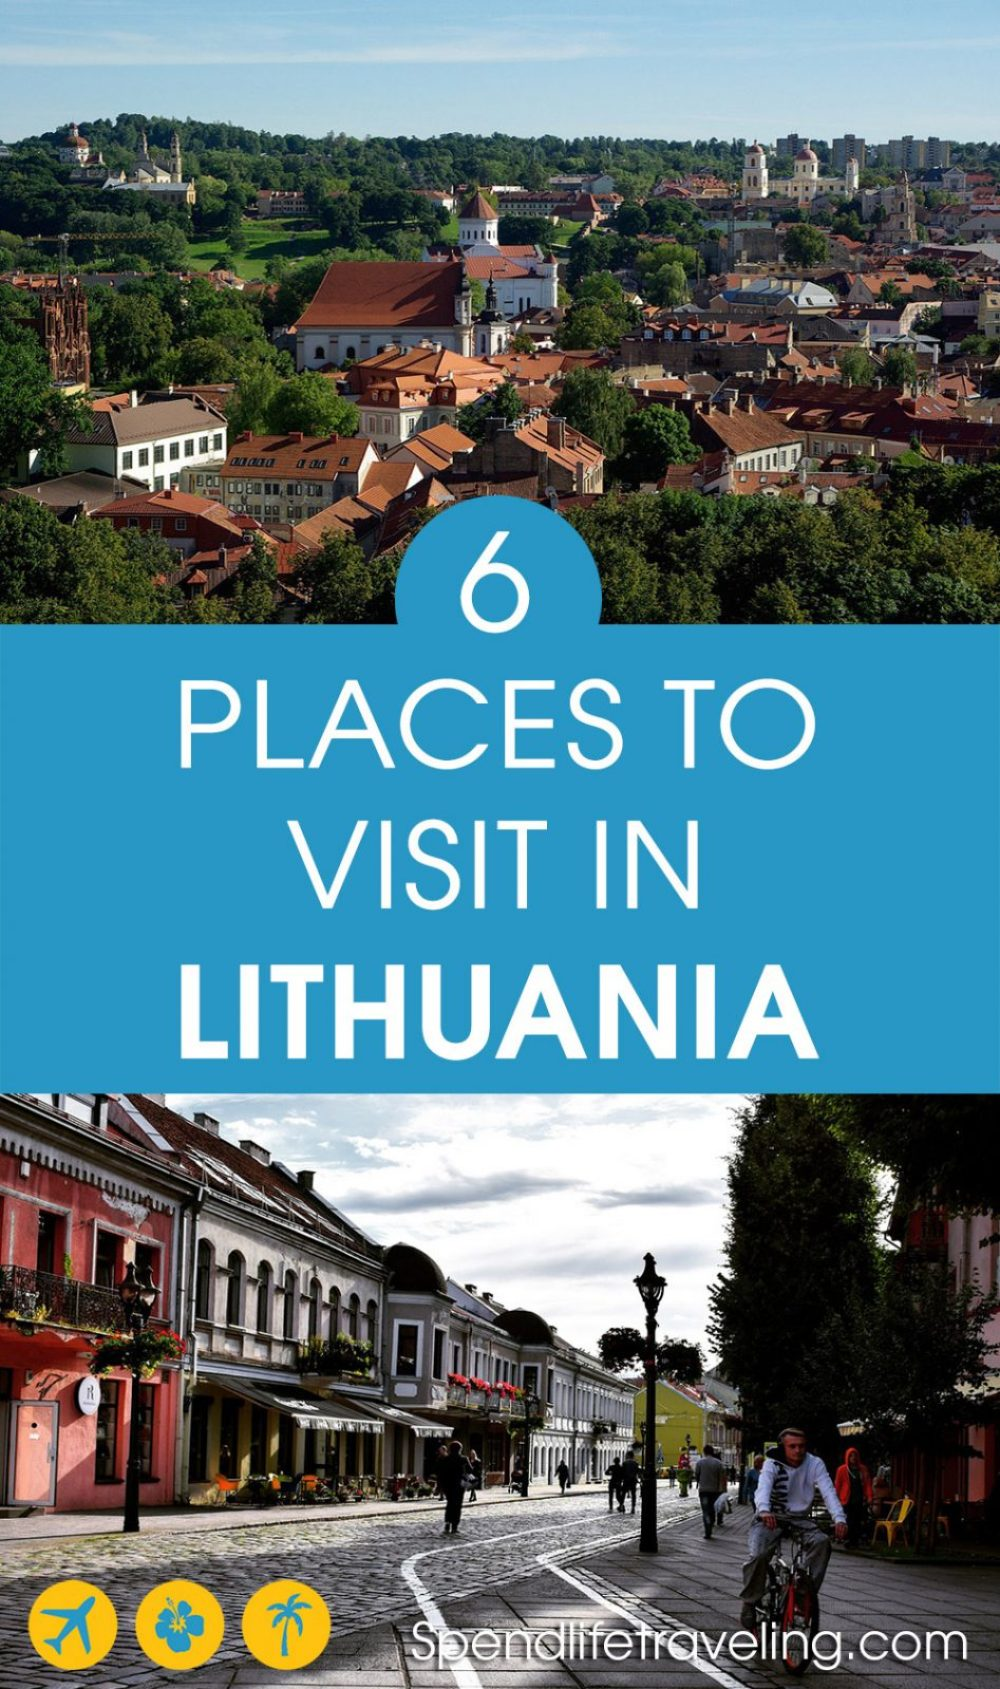 Are you planning a first trip to #Lithuania? Check out these 6 beautiful places not to miss. #traveltips #travelguide #balkans #vilnius #cheapcountries #cheaptravel